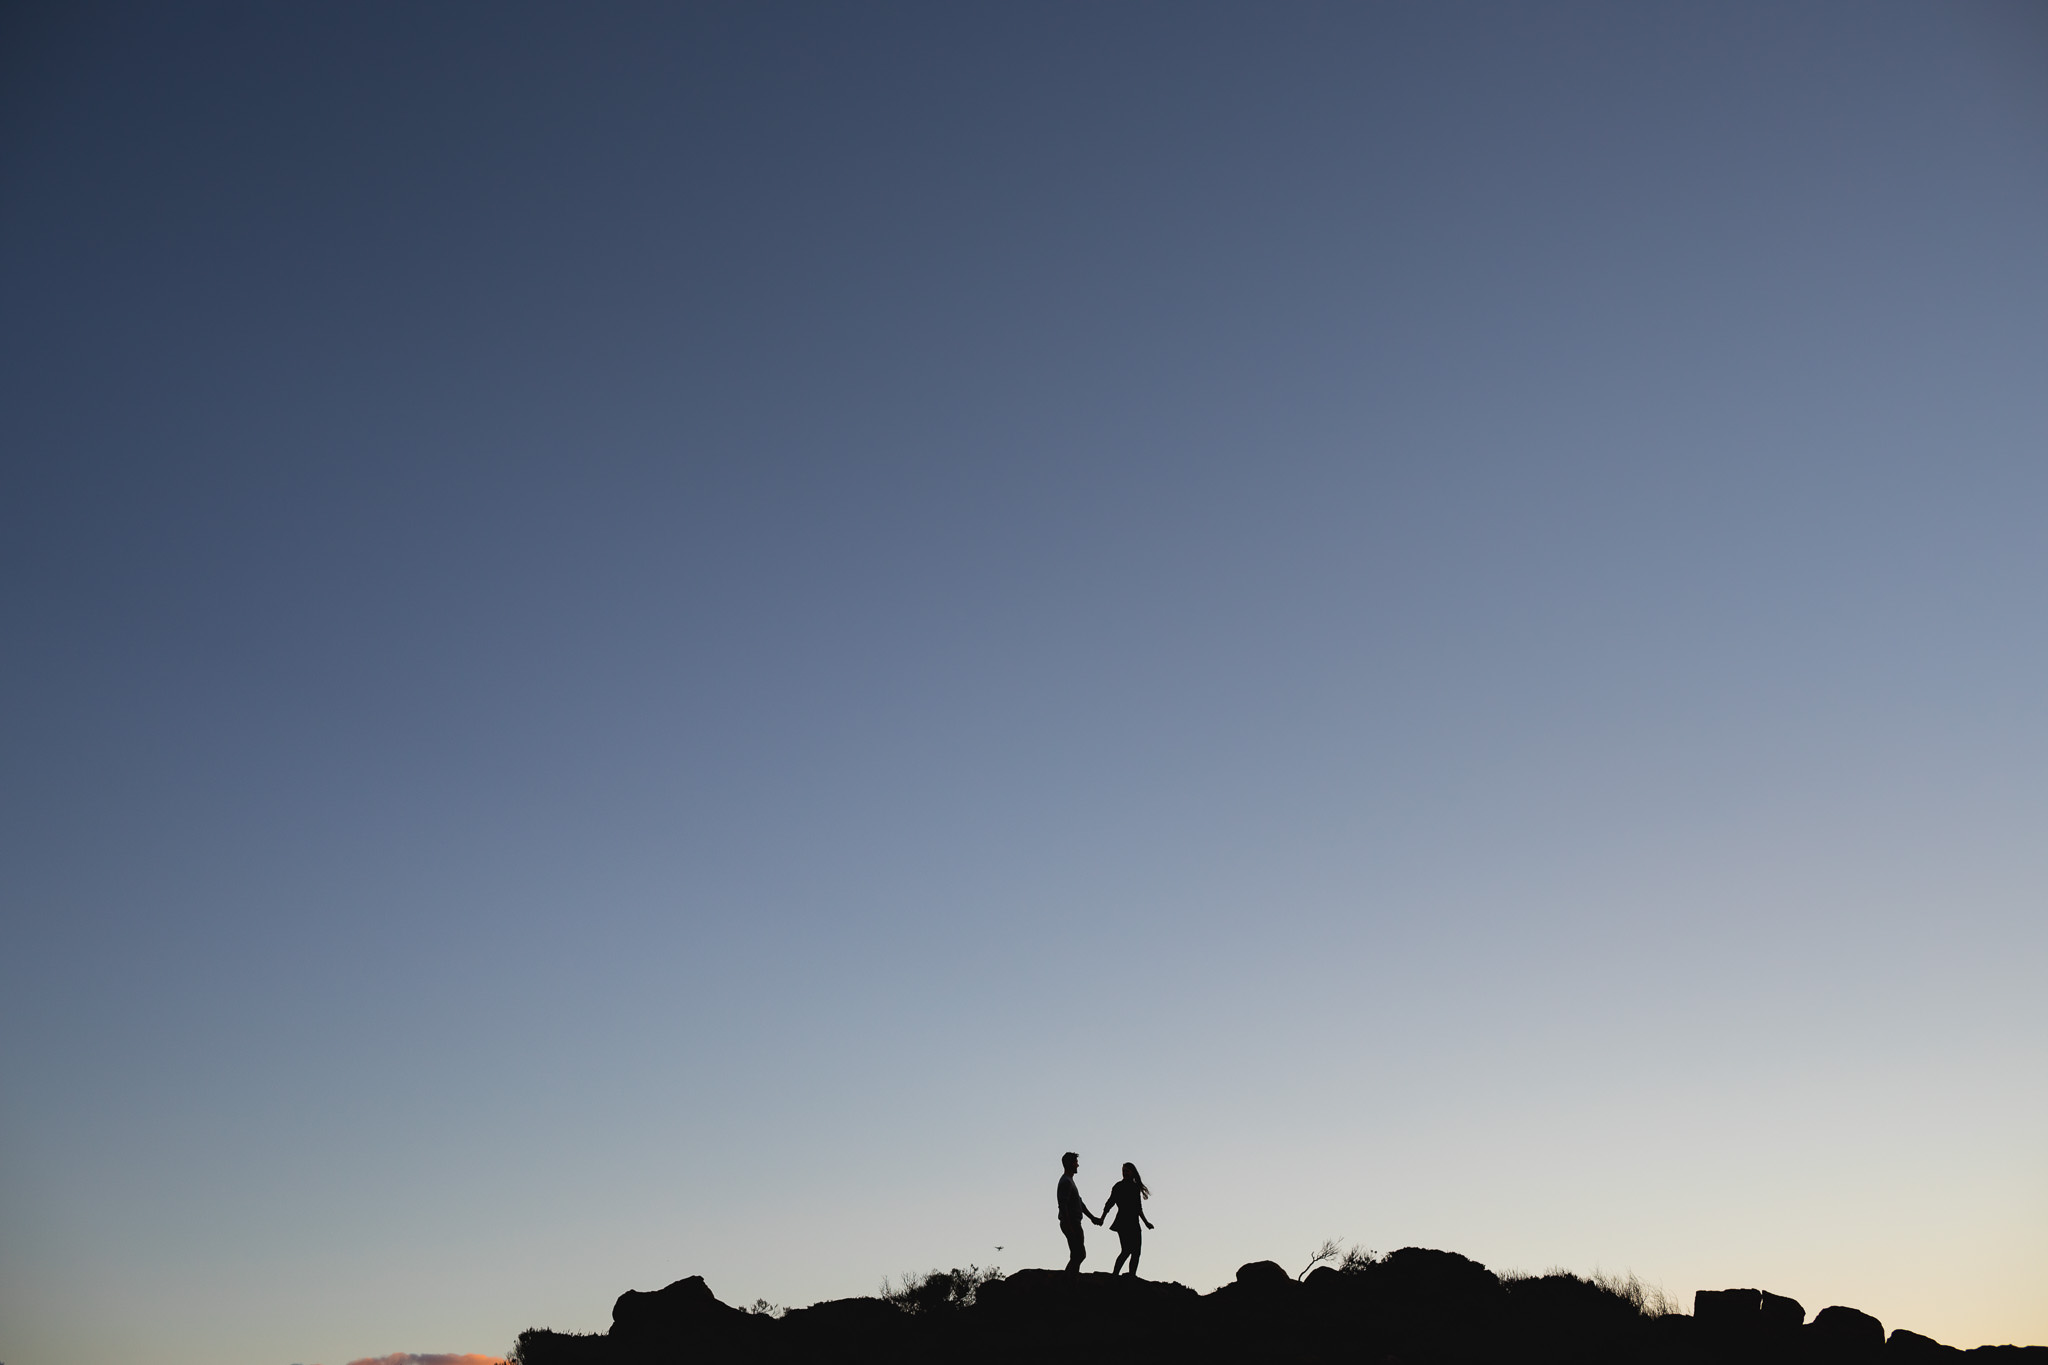 Tiny couple walking along rocks at Sugarloaf Rock with huge blue sky framing them with negative space